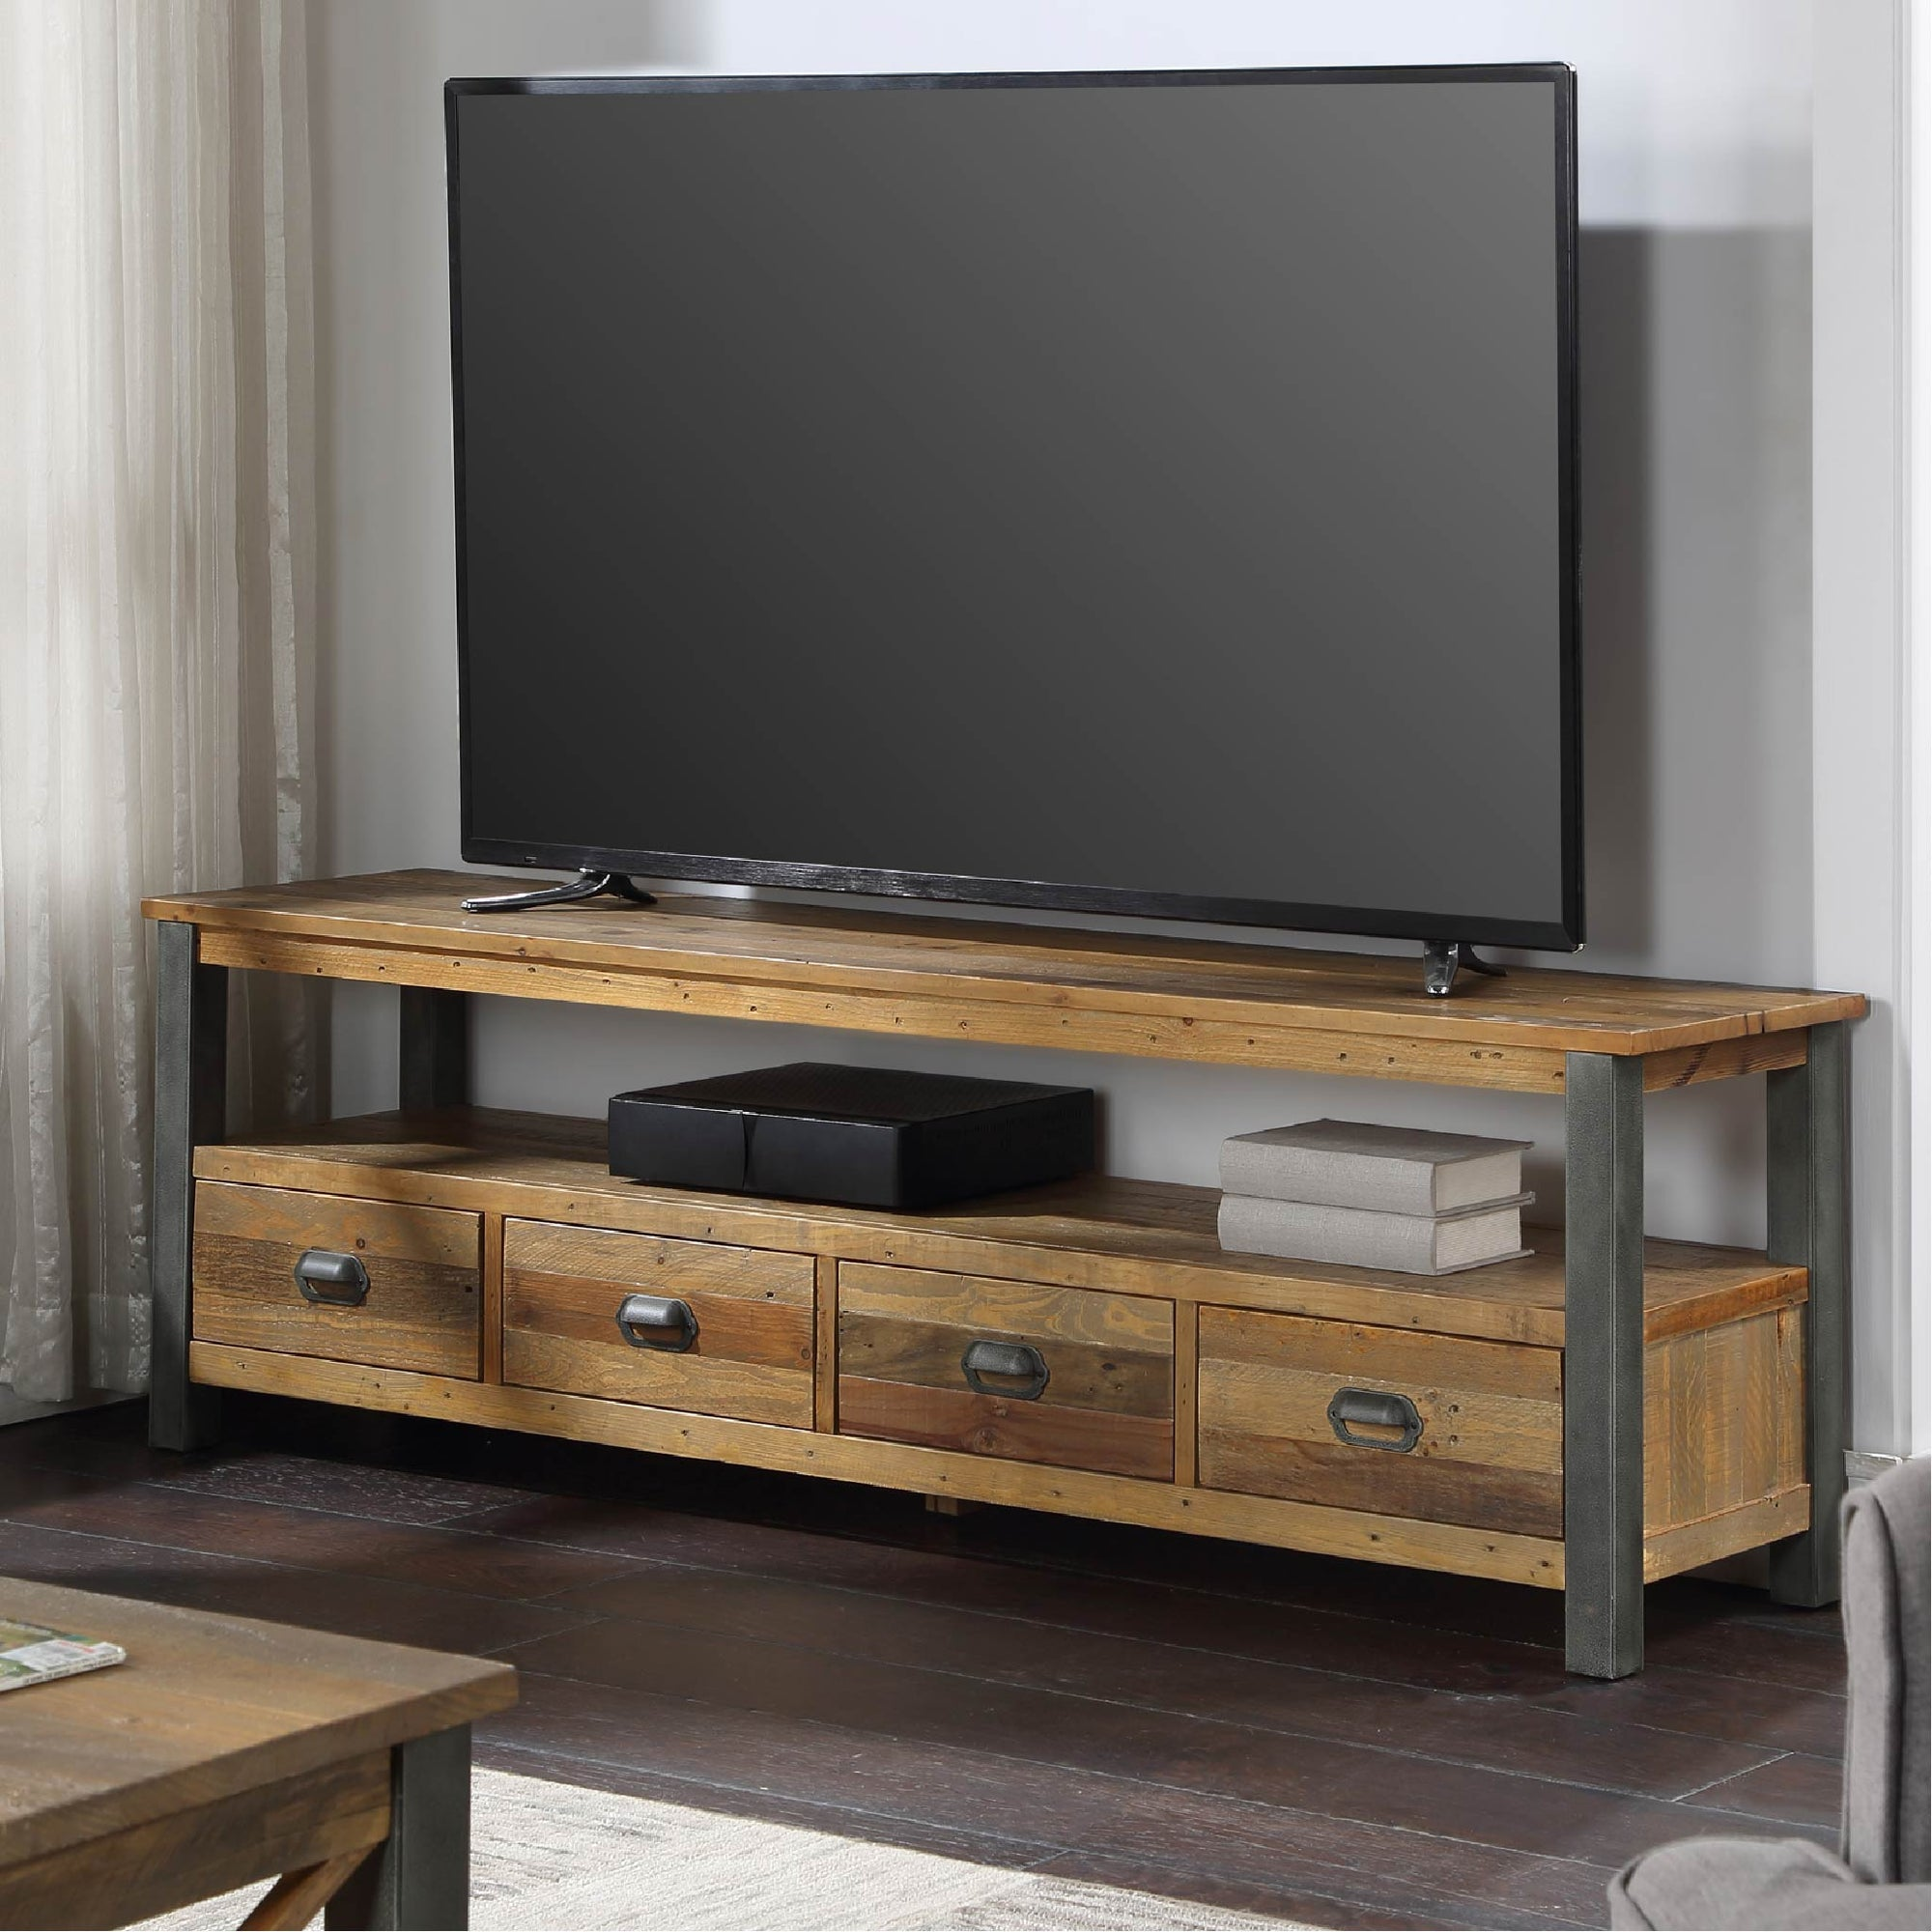 Urban Elegance Industrial Reclaimed Wood Extra Large TV Stand